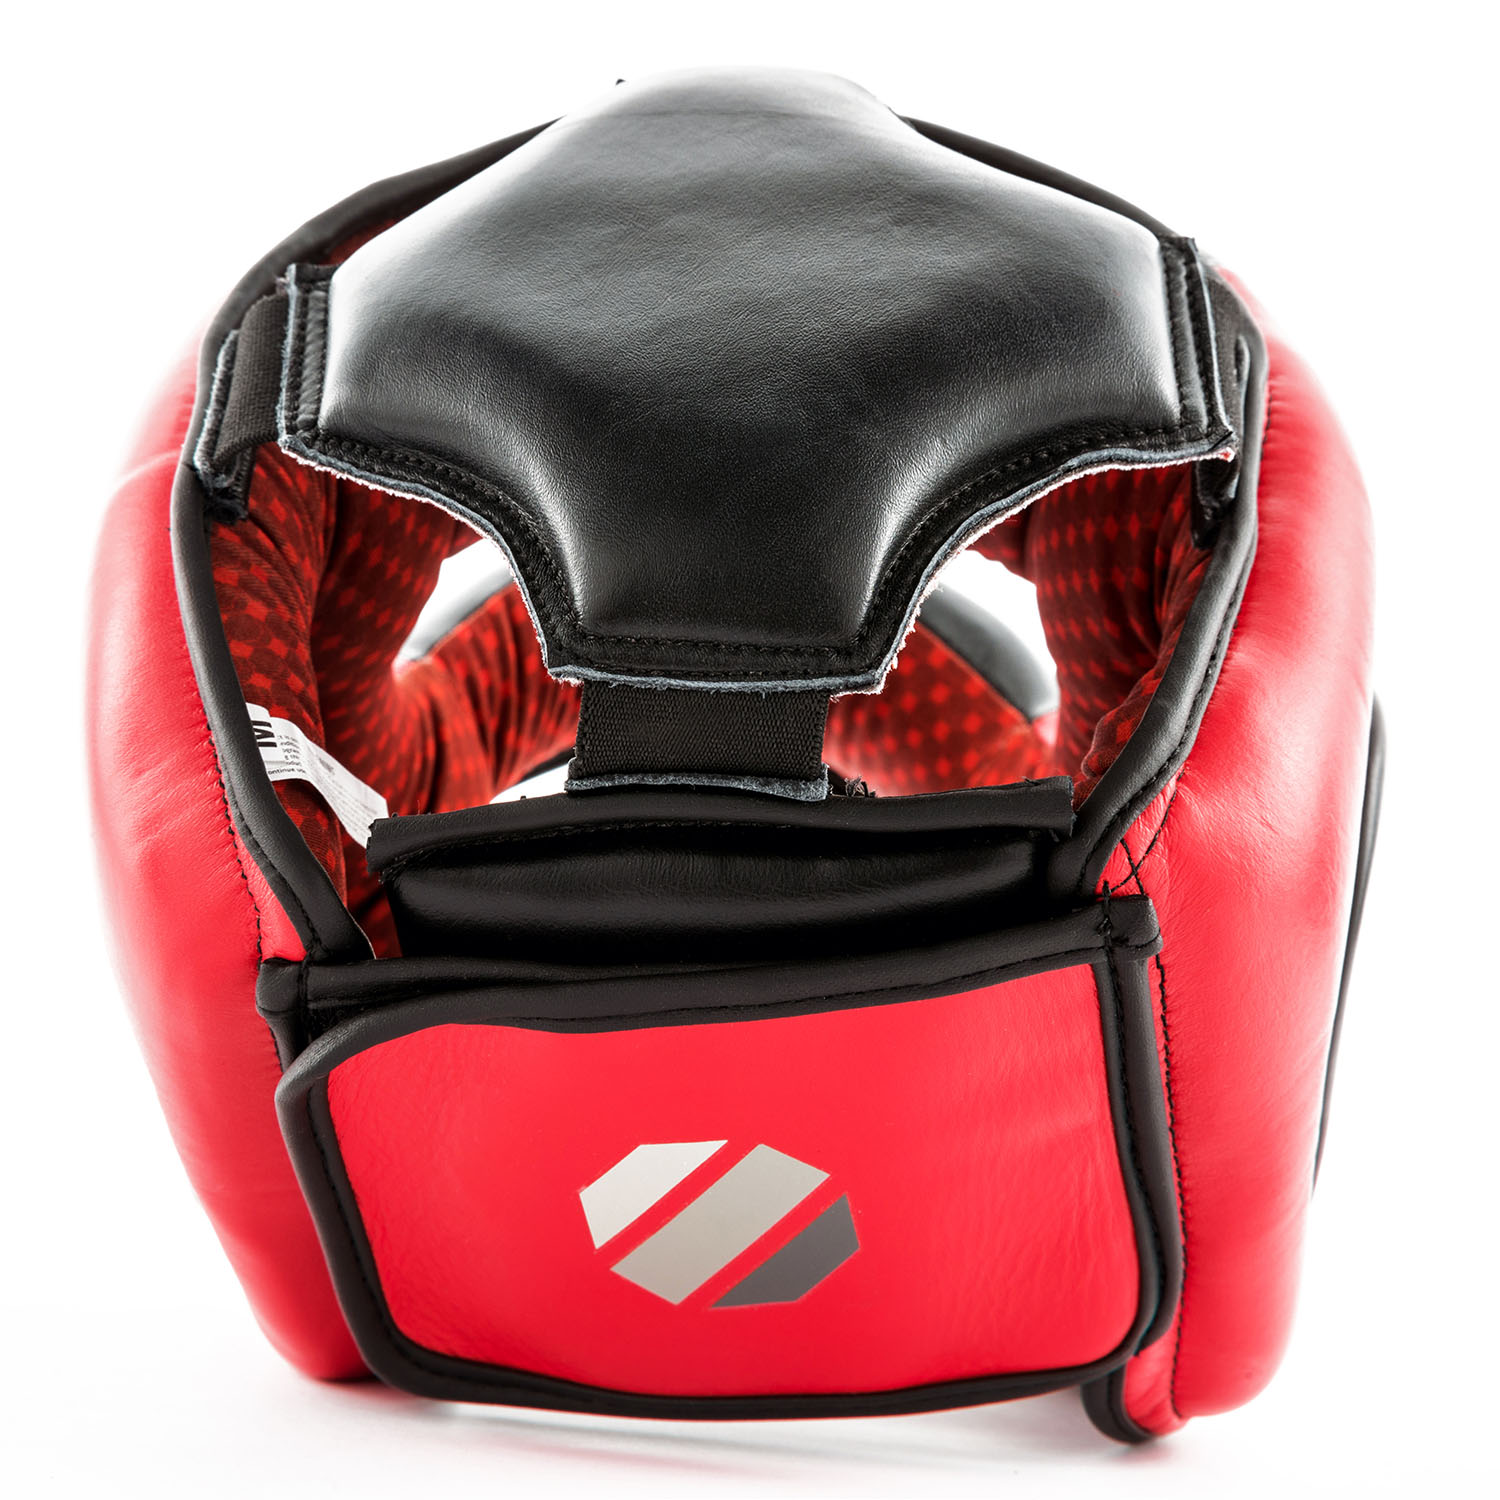 FULL FACE TRAINING HEAD GEARbk-2.jpg